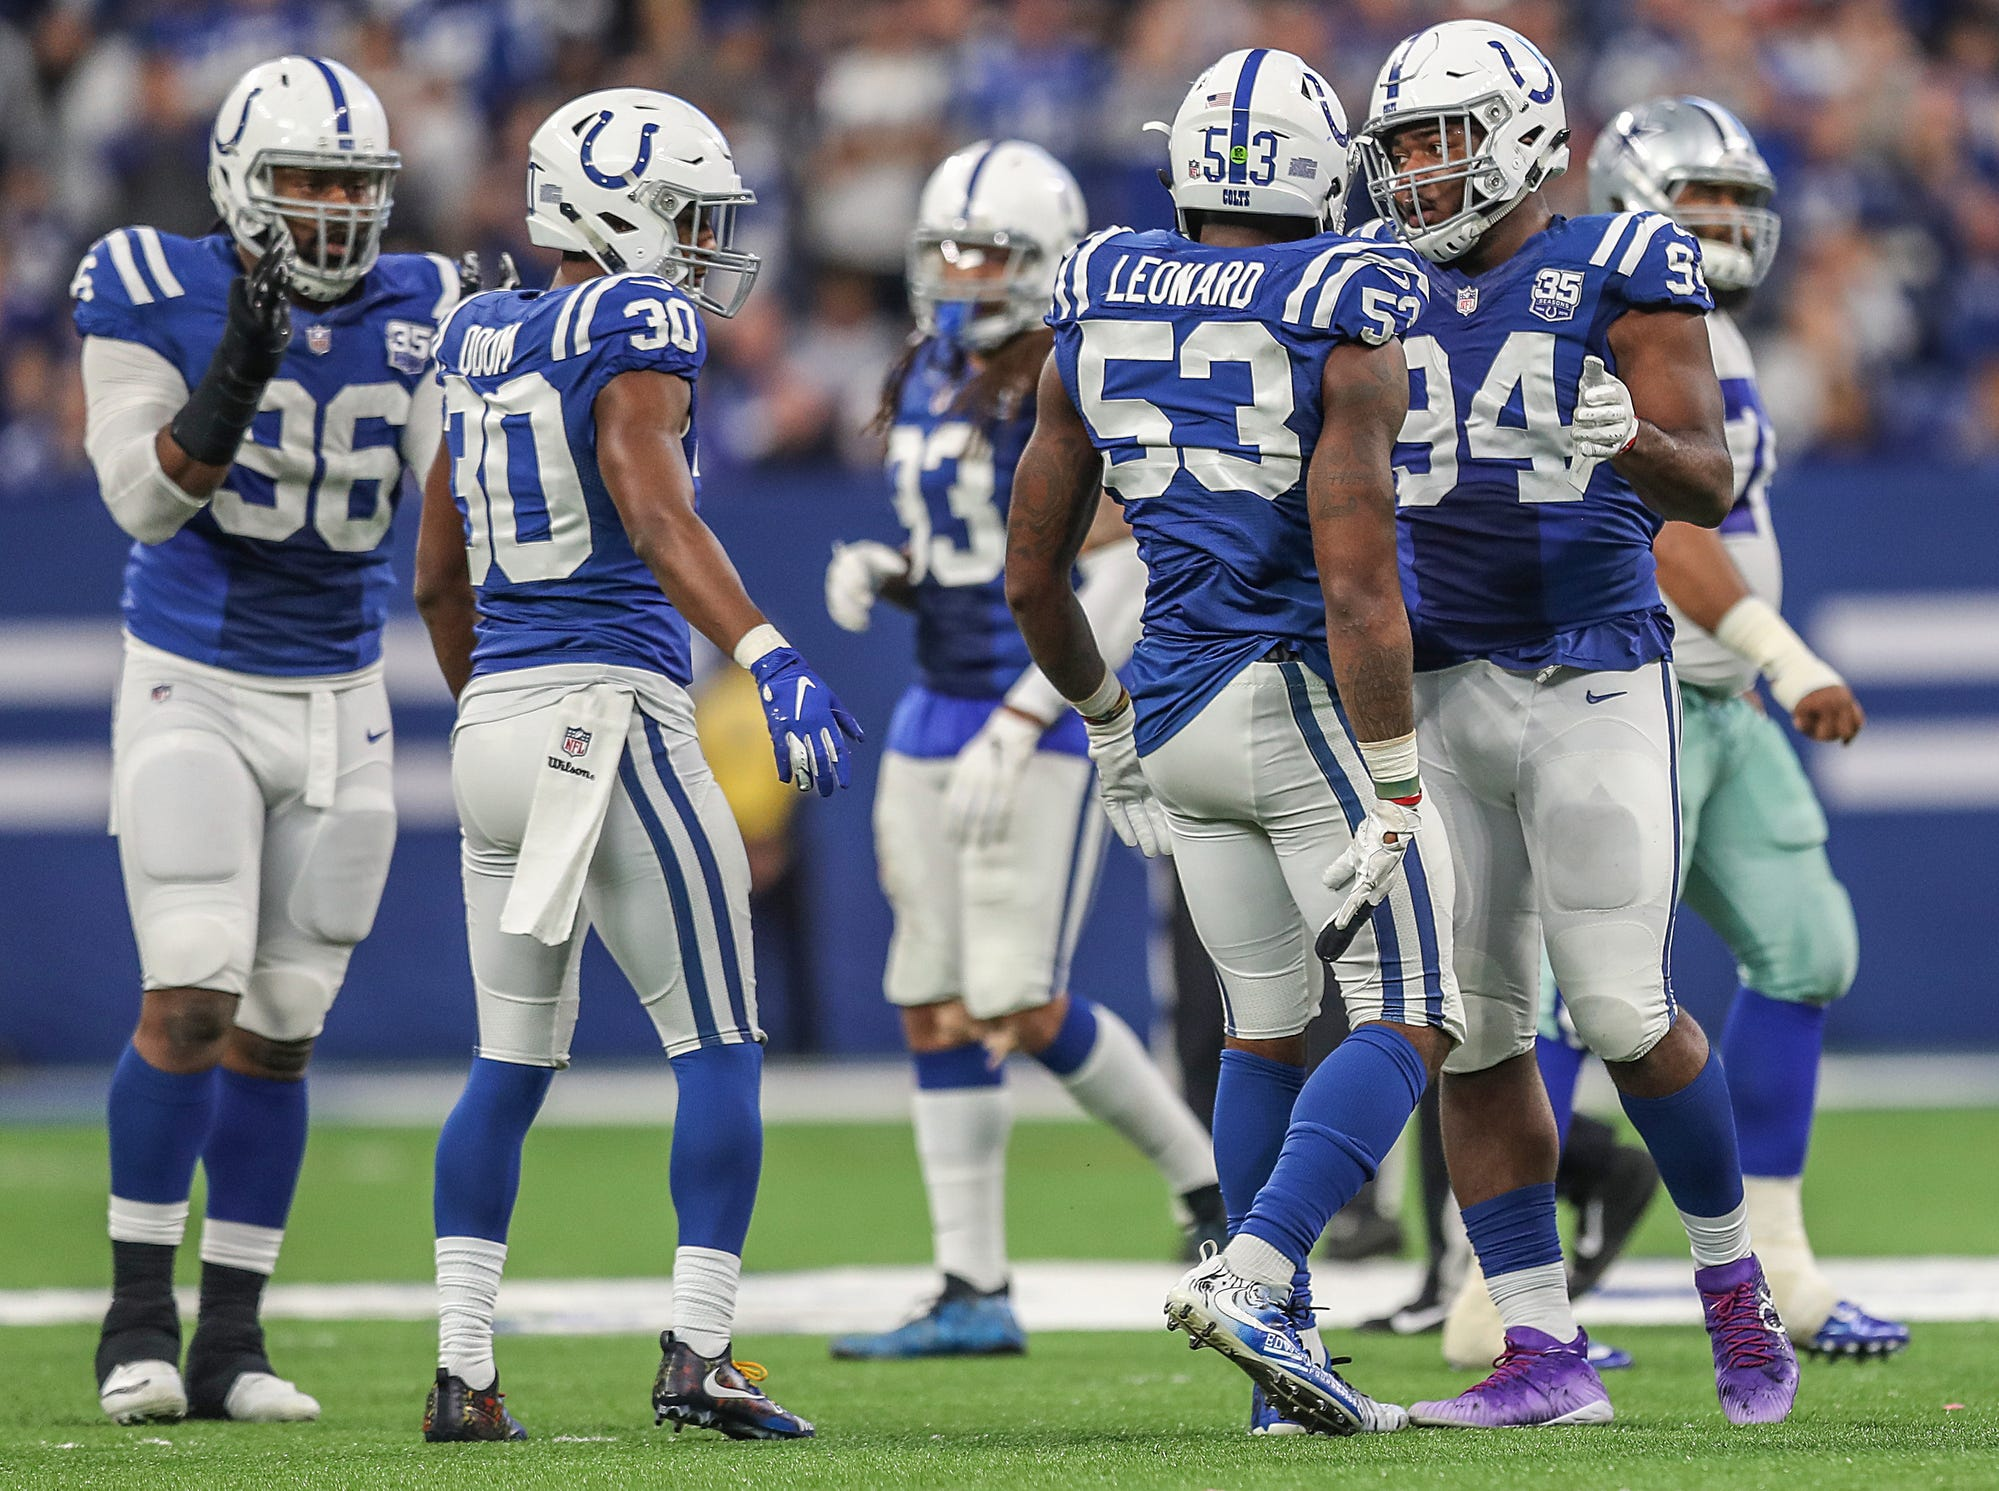 in the second half of the game at Lucas Oil Stadium in Indianapolis, Sunday, Dec. 16, 2018. The Colts won, 23-0.